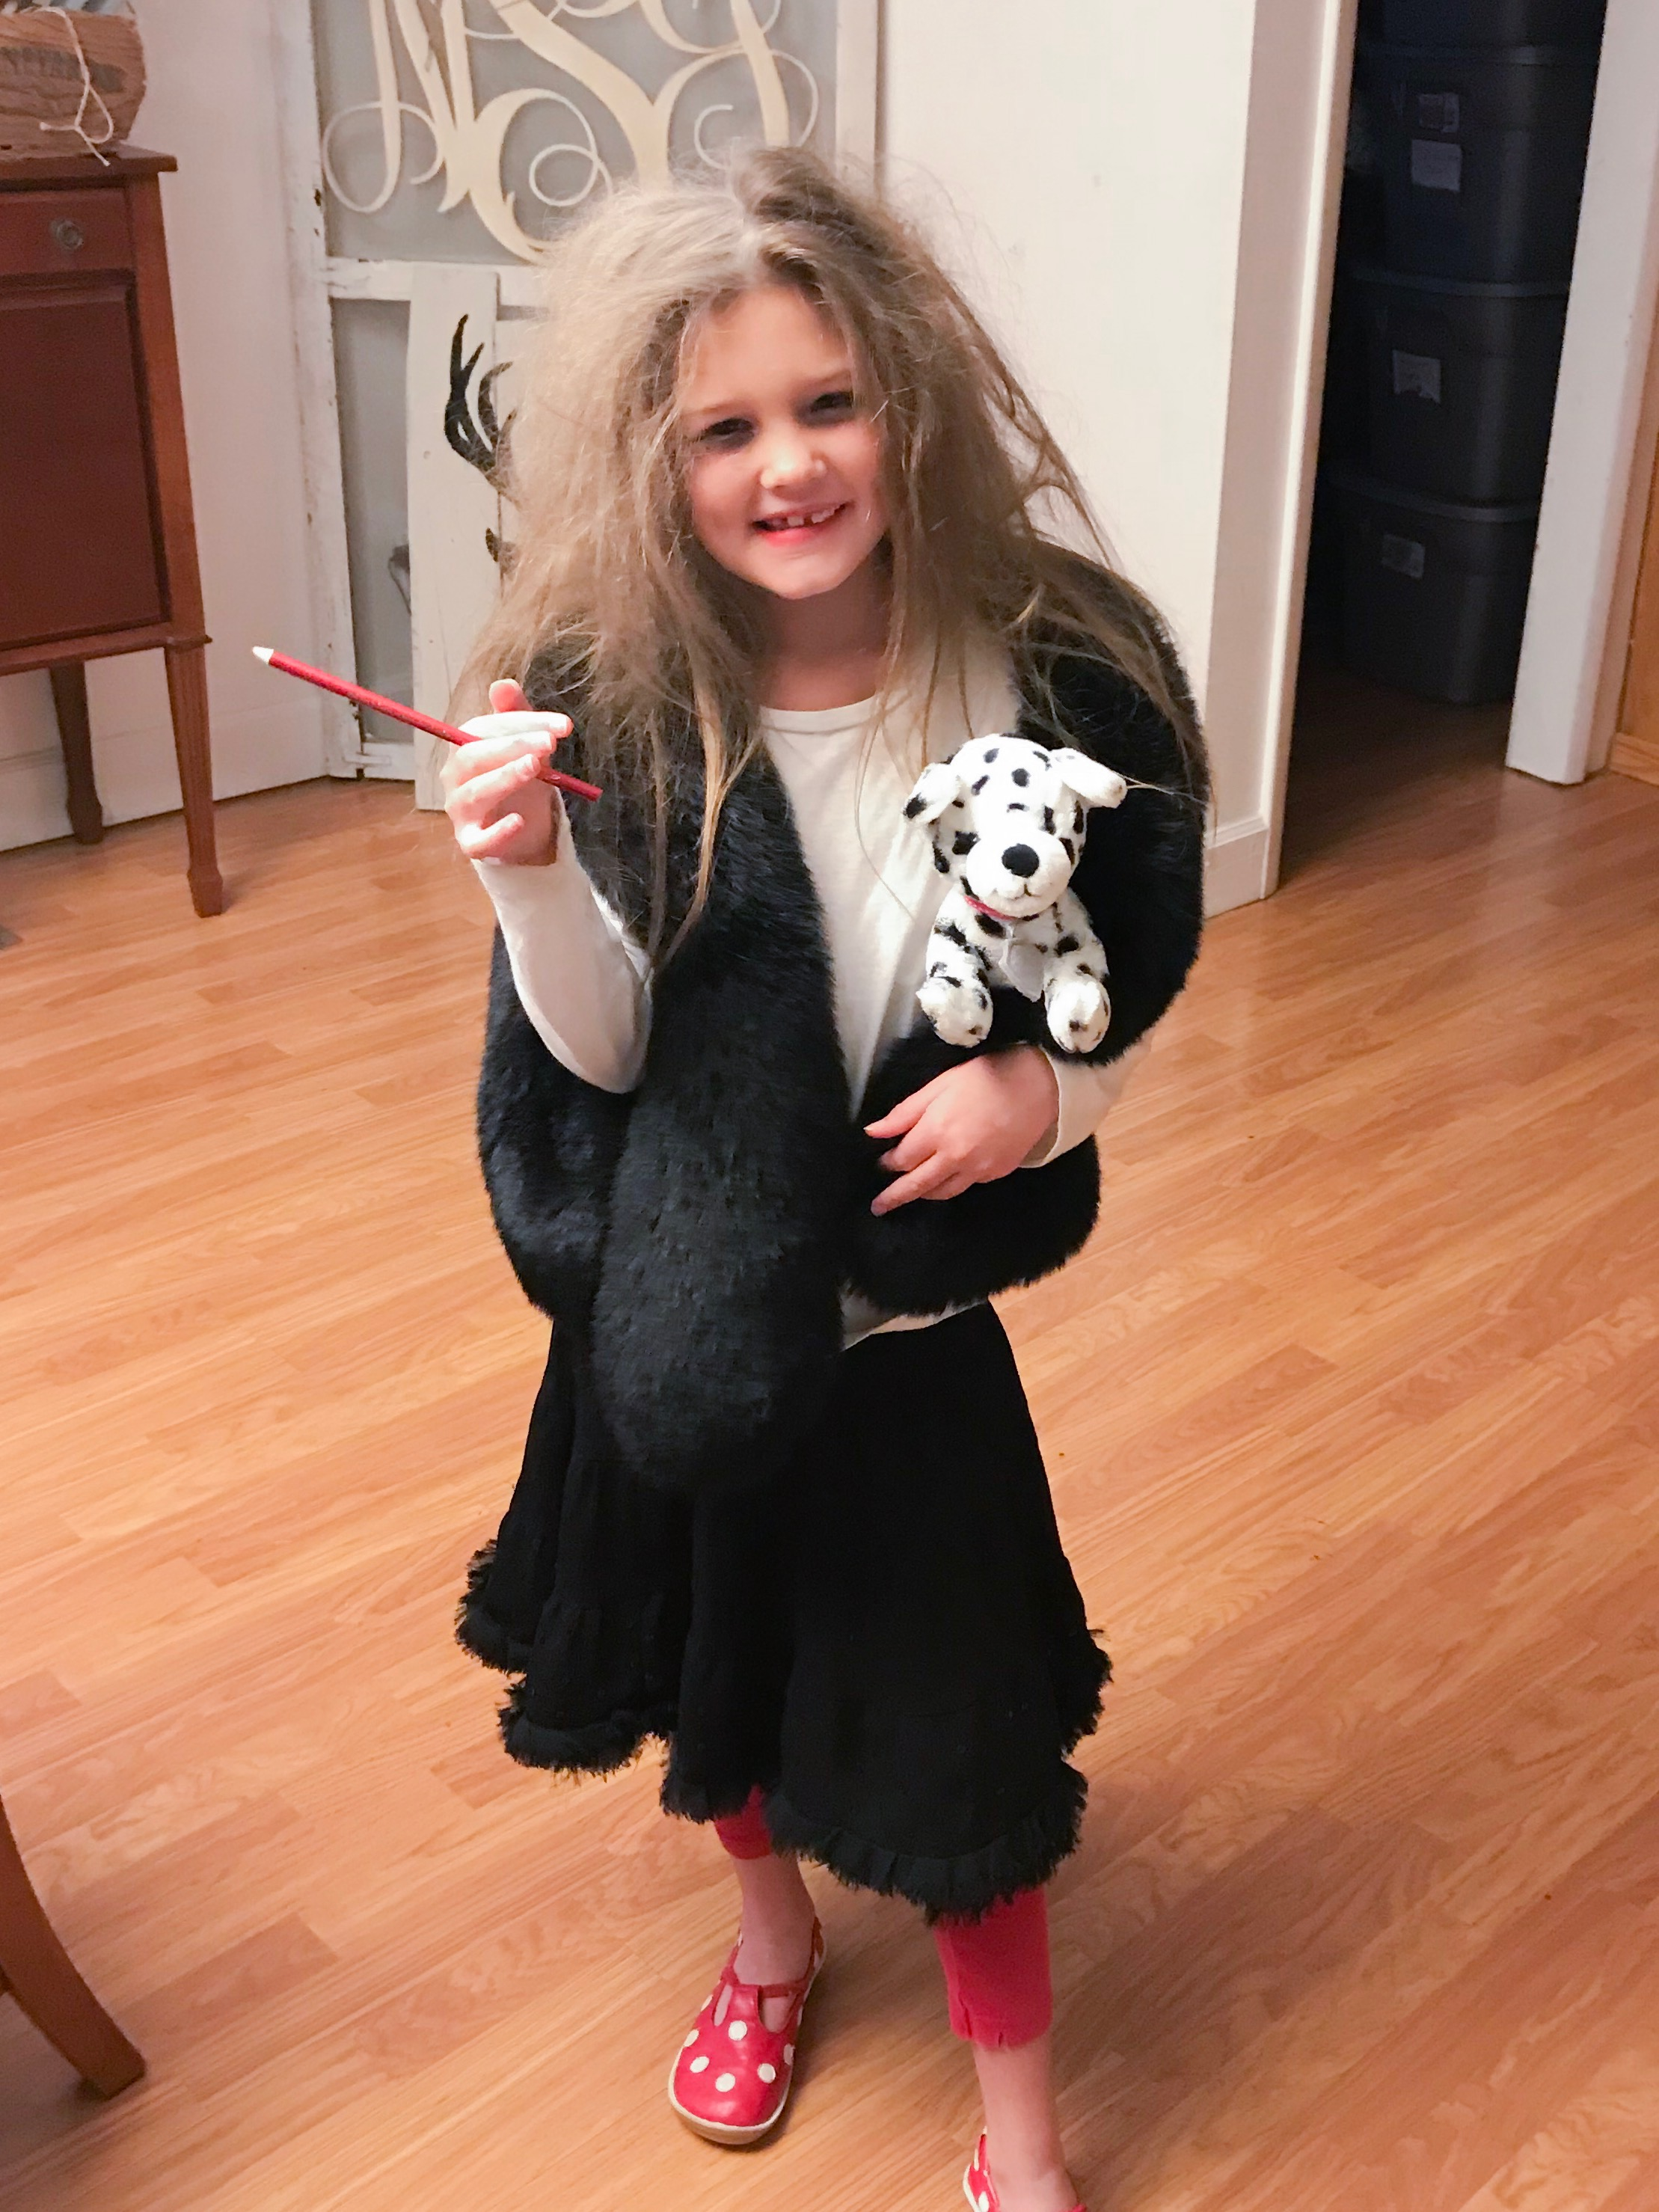 101 Dalmatian theme for their 100th day of school......this is what she looked when she left the house that morning.